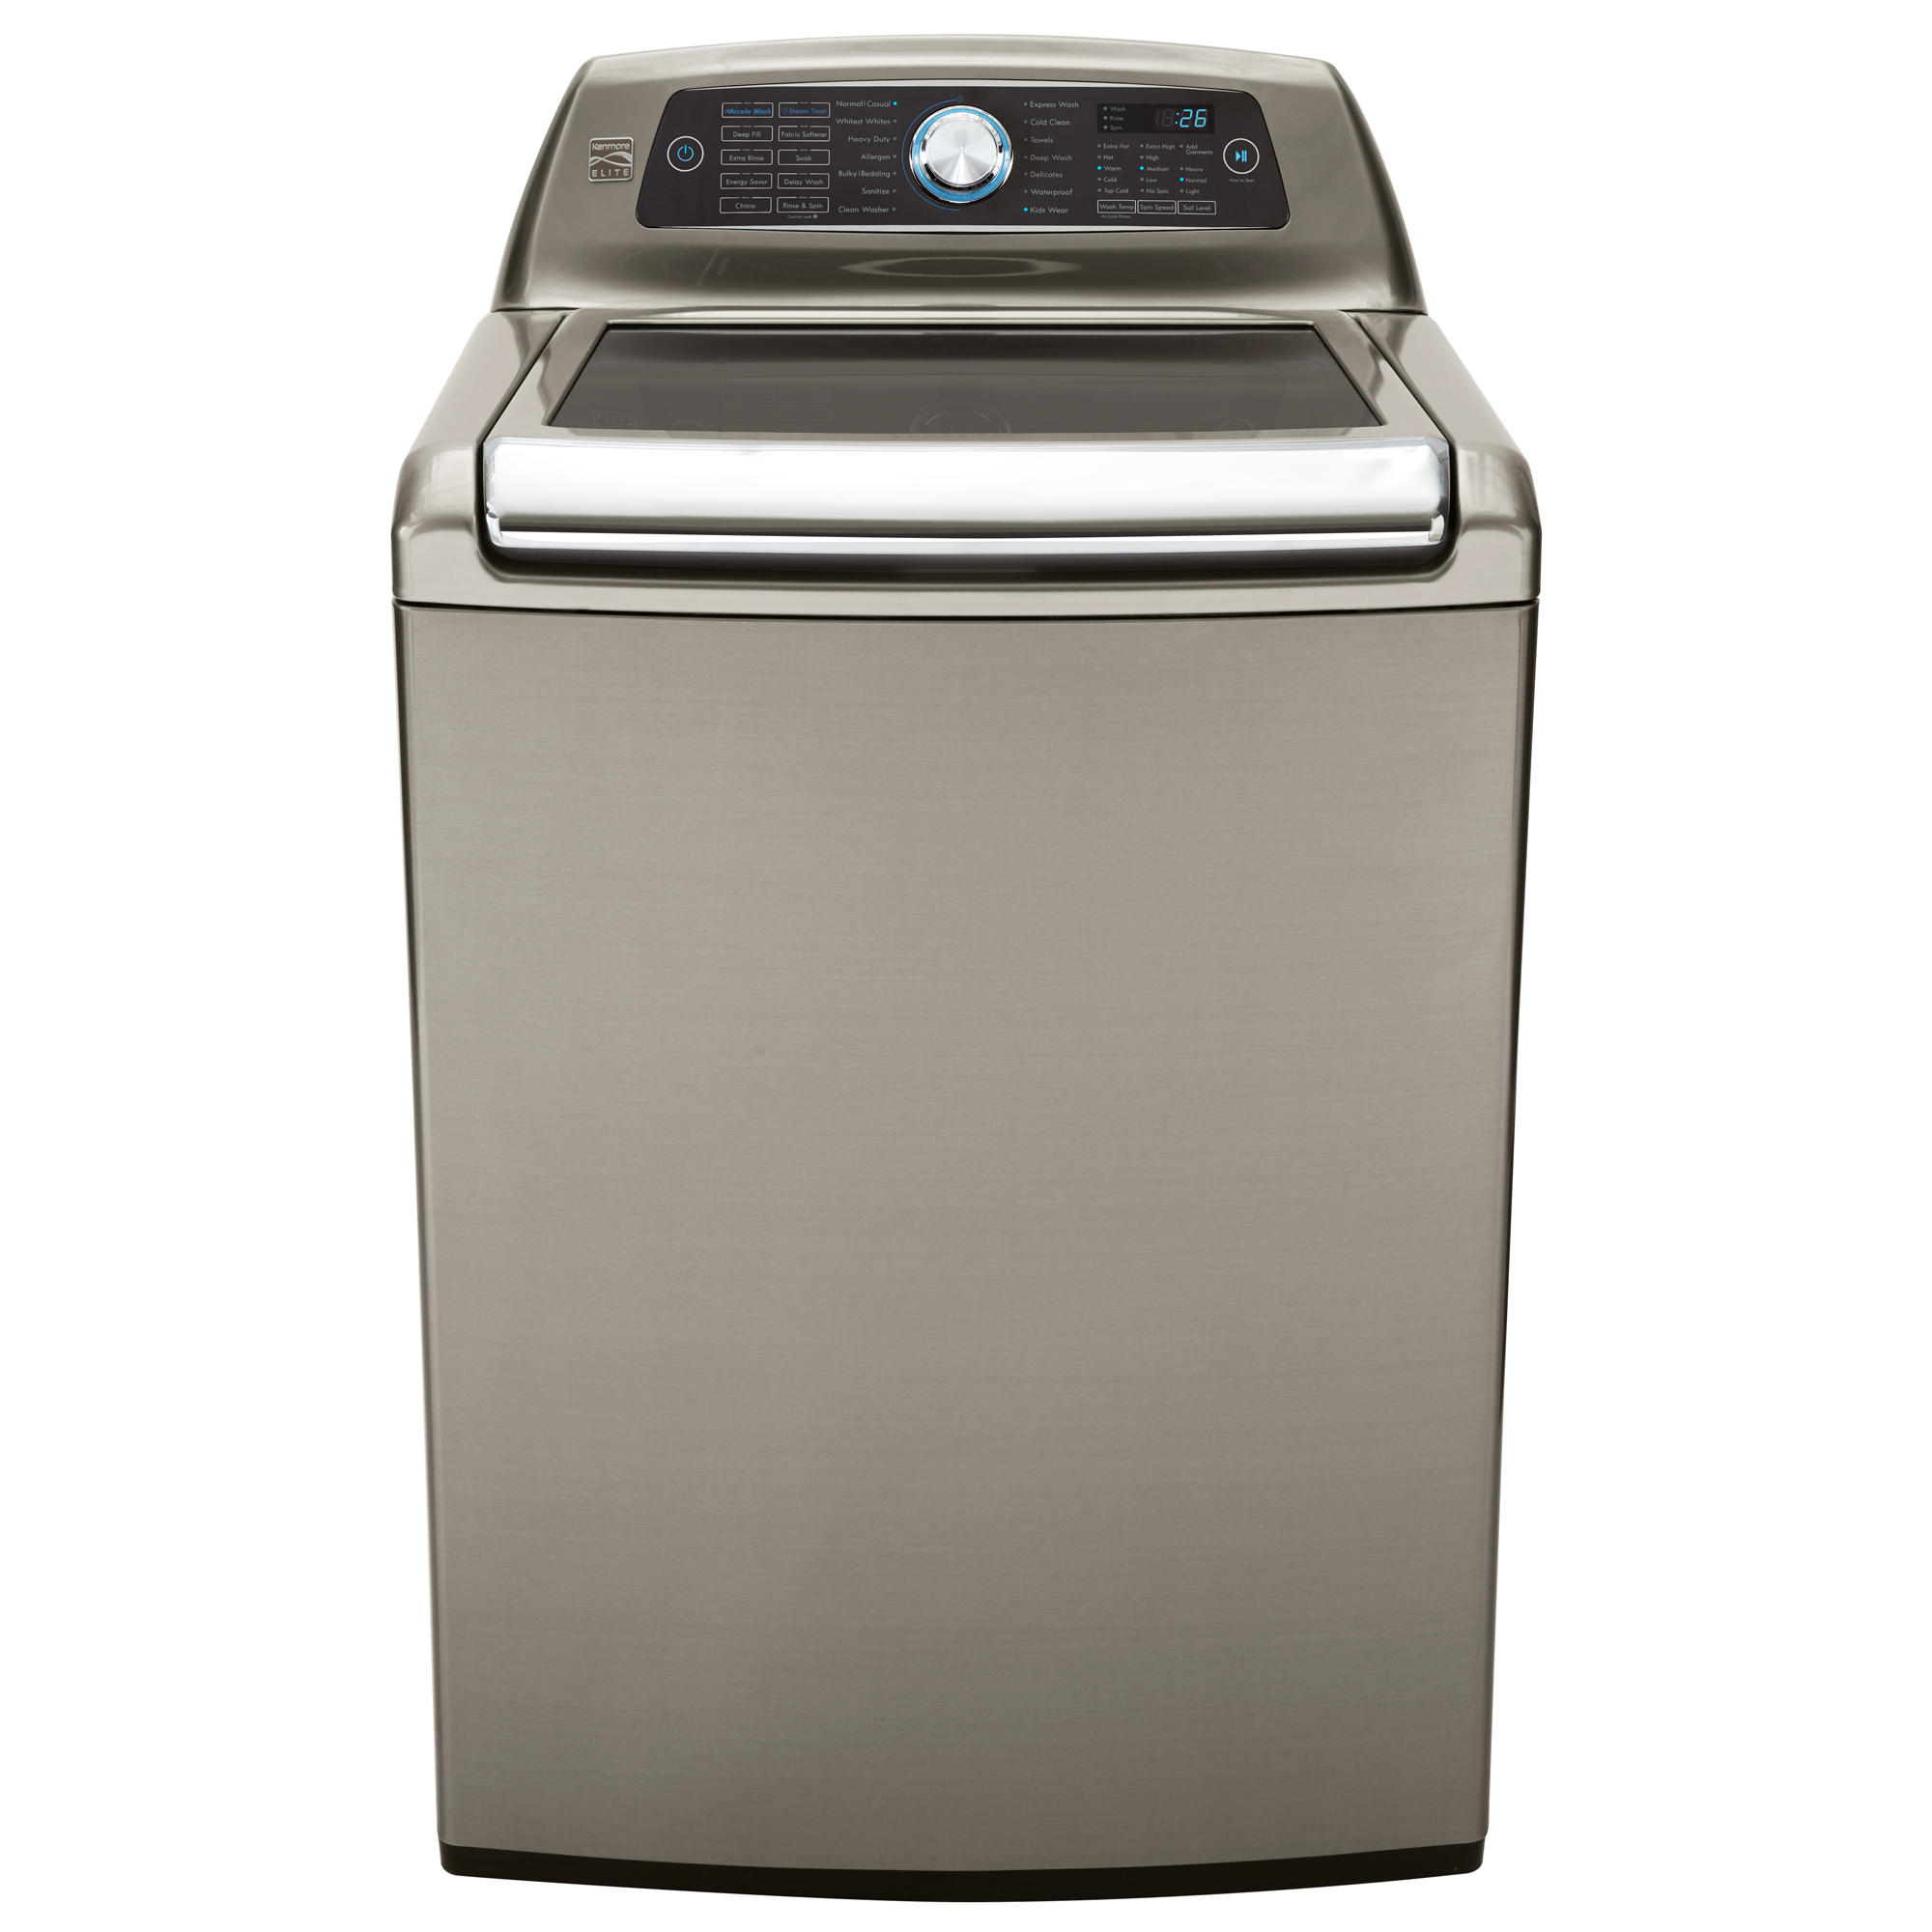 31553-5-2-cu-ft-Top-Load-Washer-w-Steam-Treat%C2%AE-Accela-Wash%C2%AE-Metallic-Silver